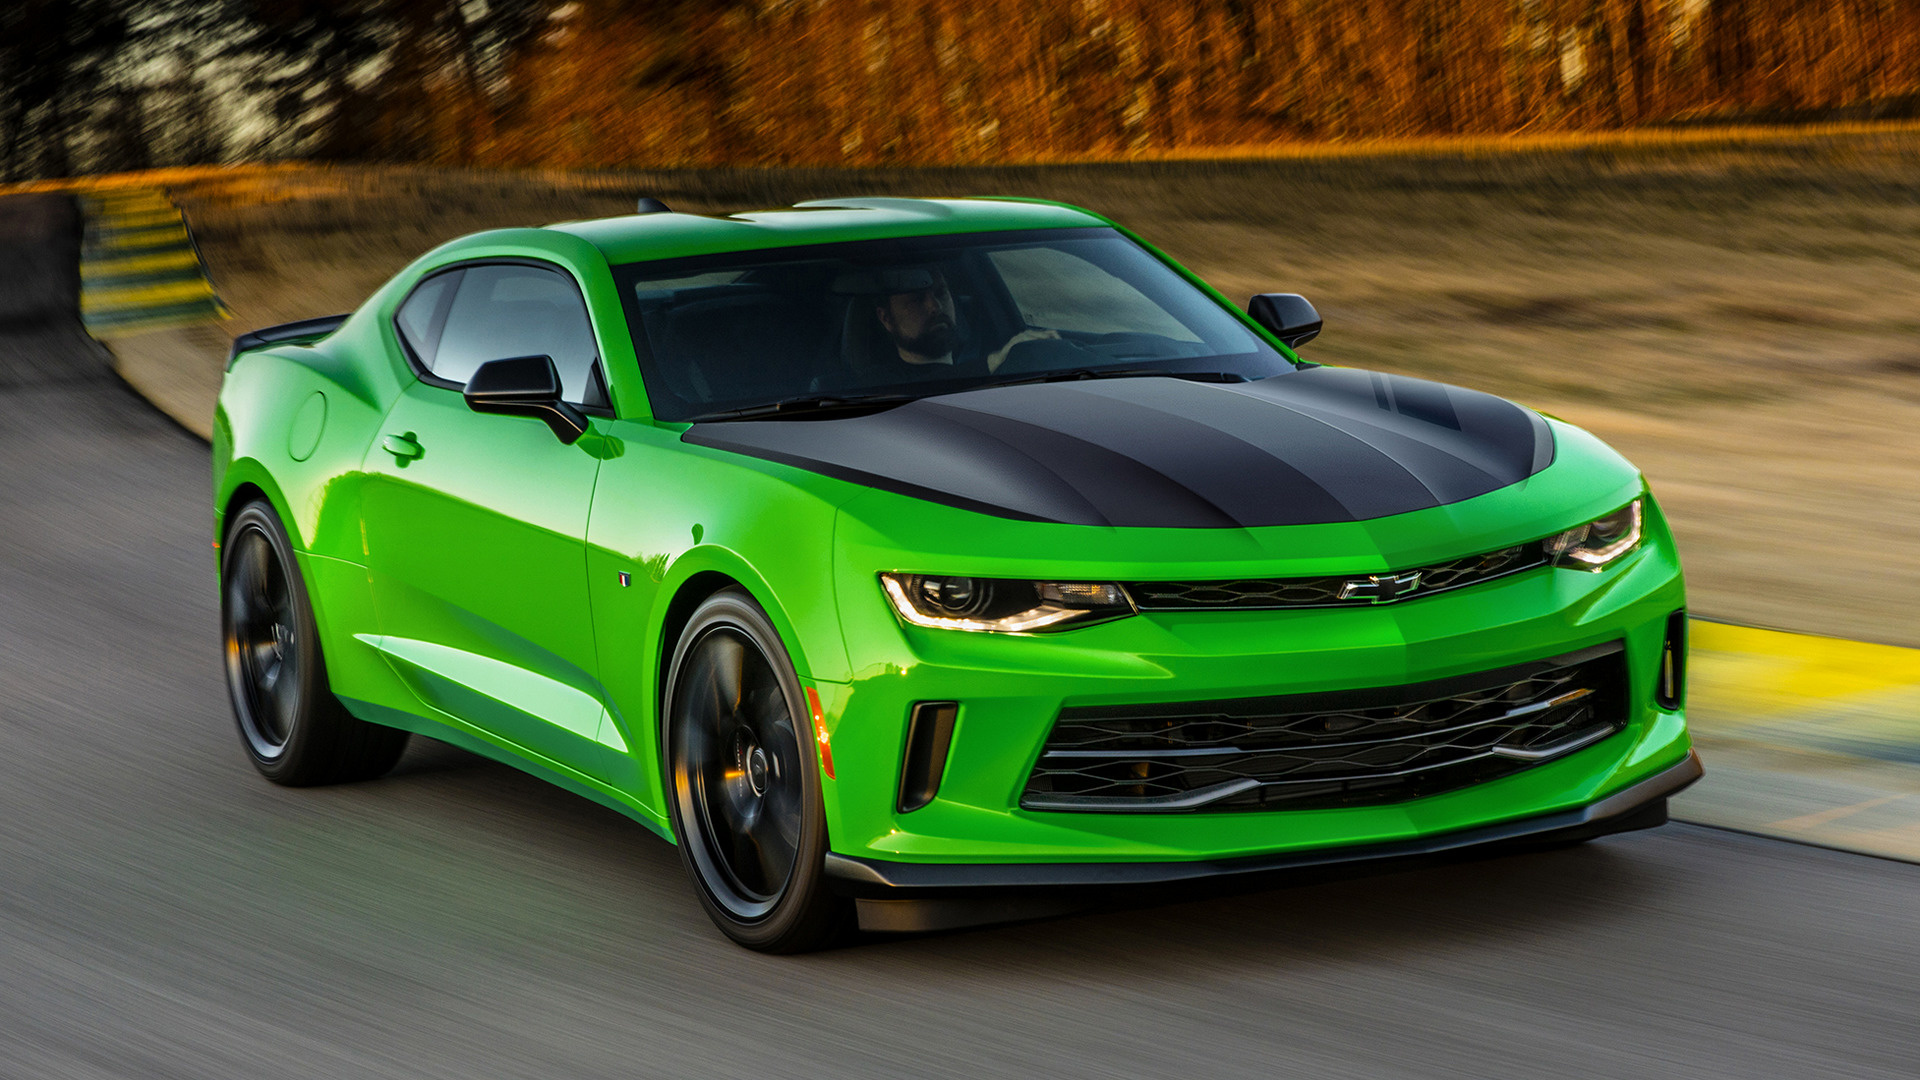 2017 Chevrolet Camaro 1LE - Wallpapers and HD Images | Car ...